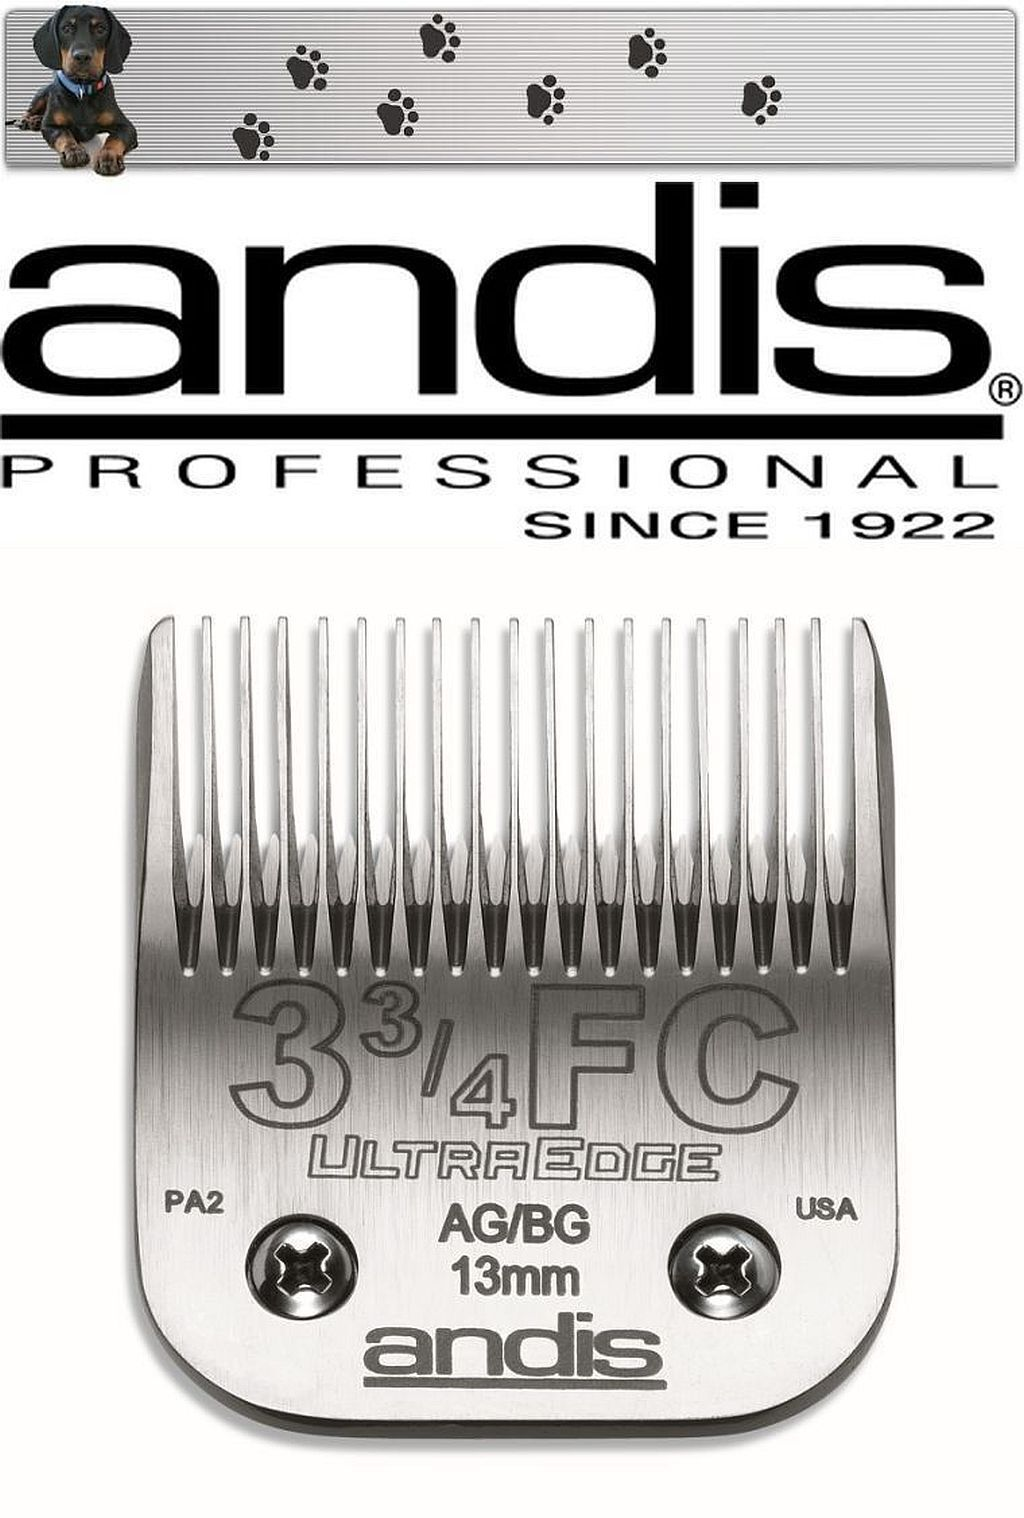 Andis Ultra Edge Shaving Head 3 3 4f 13 mm Aesculap - Moser - Choice - Oster NEW